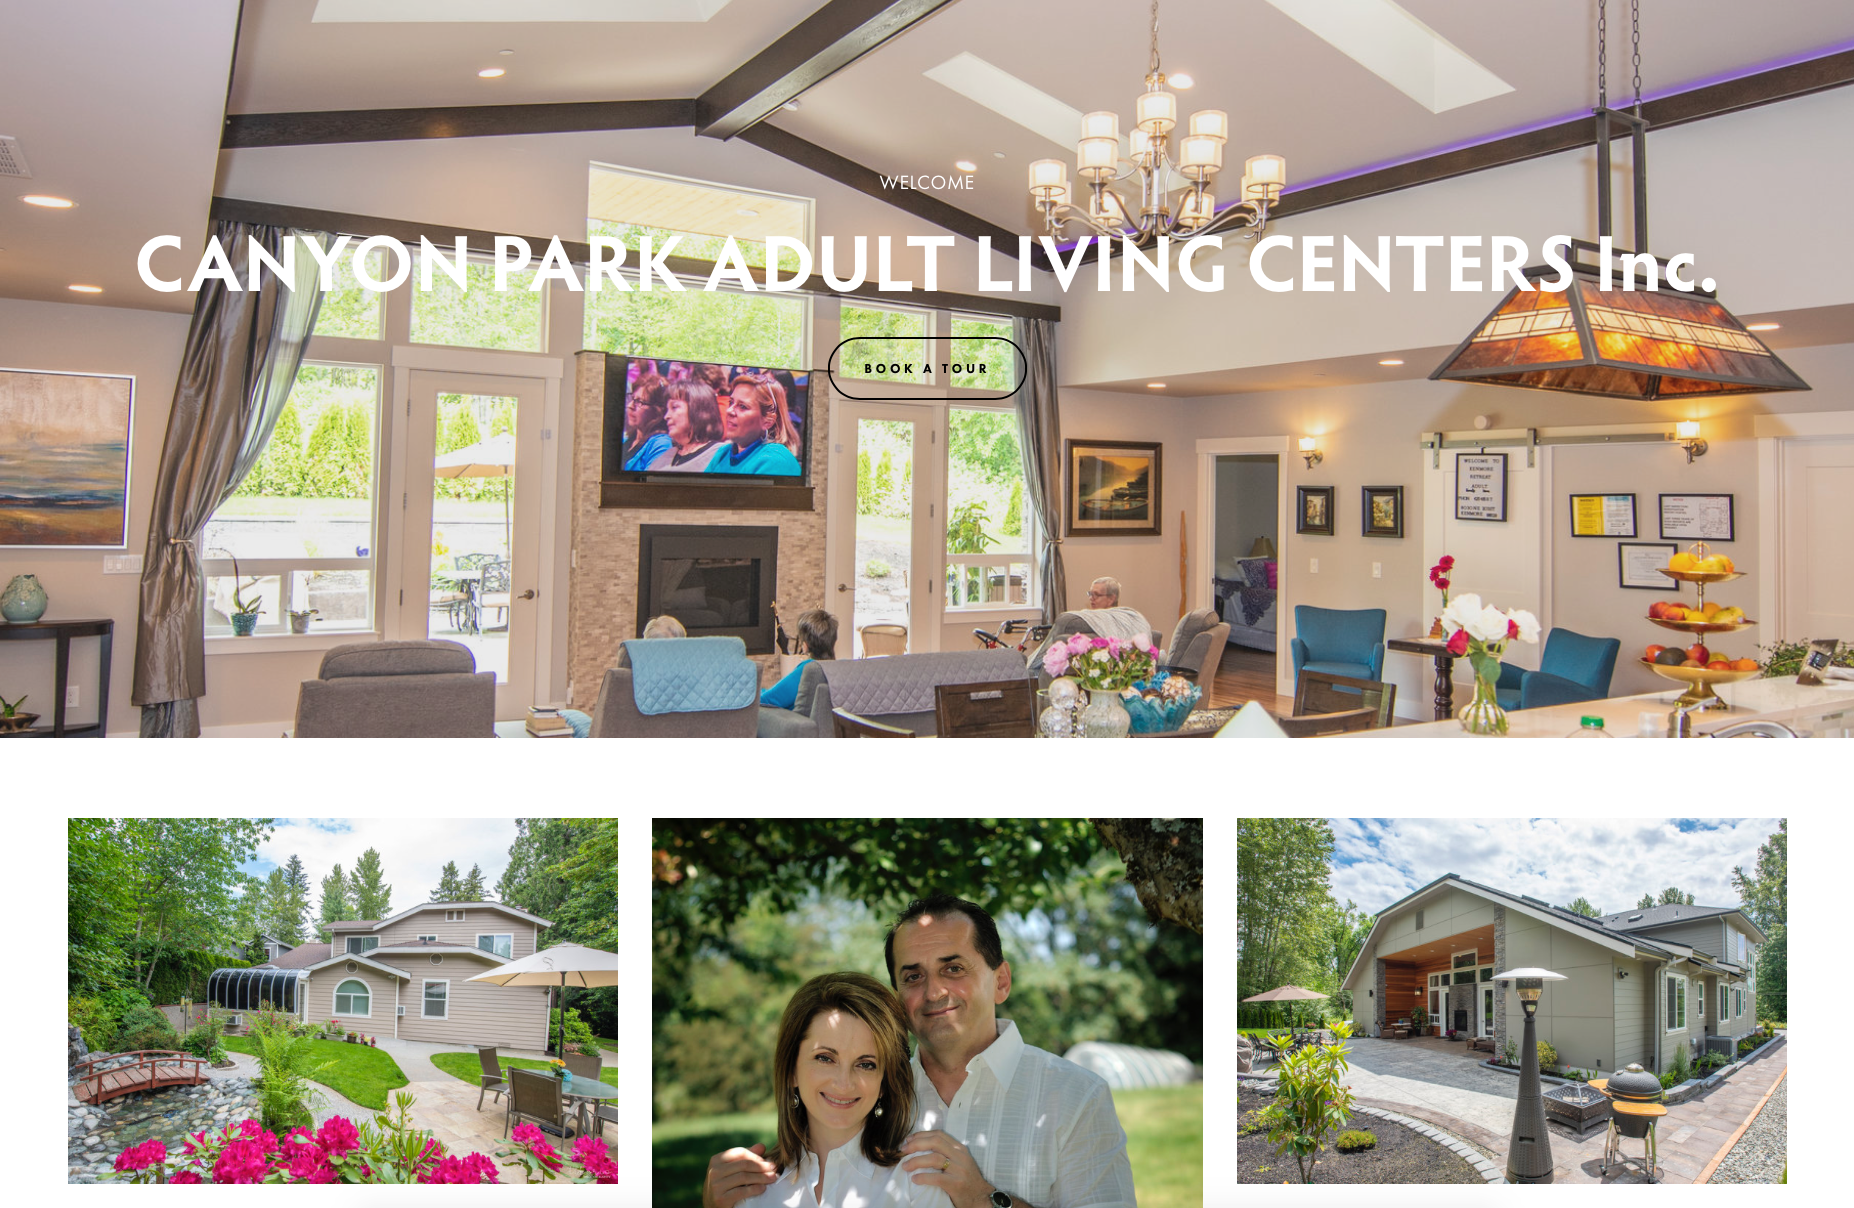 Canyon Park Centers - Adult Family Centers in Bothell, WA and Kenmore, WA